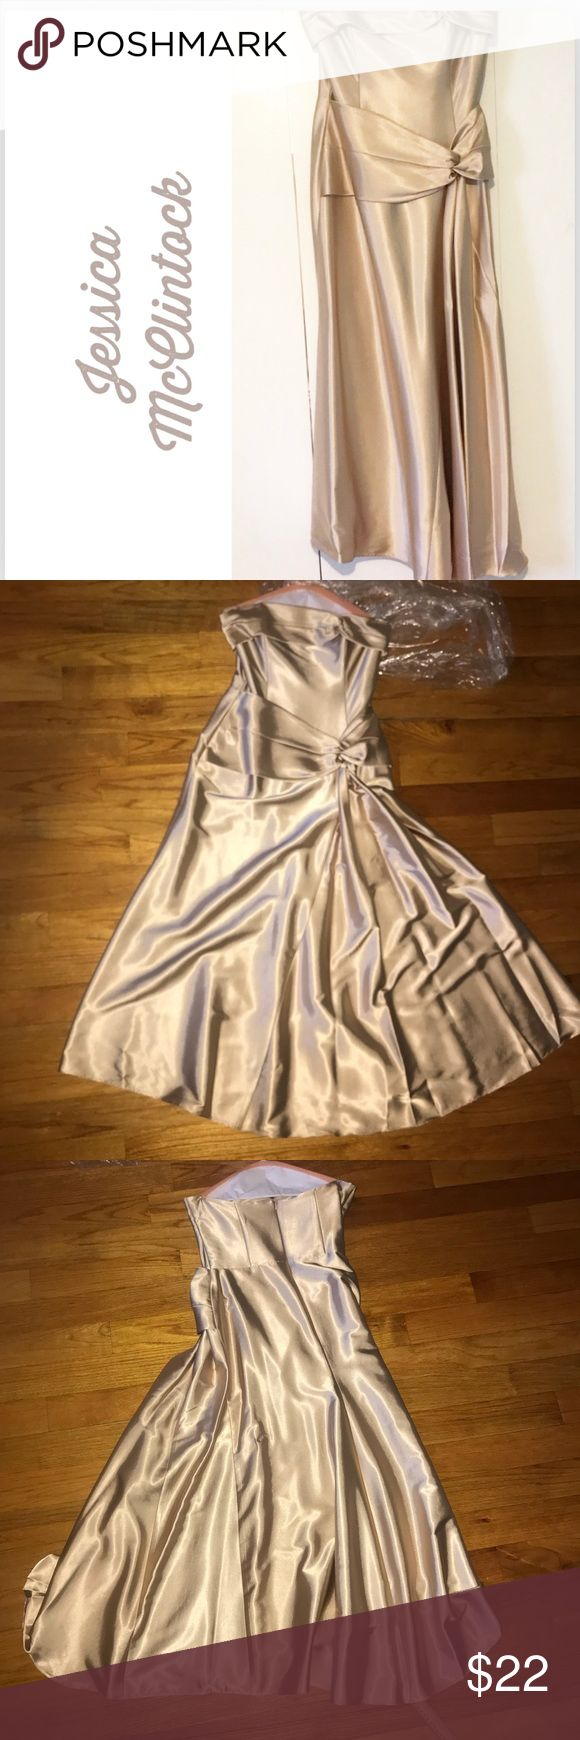 Strapless Gold Jessica McClintock Formal Dress Overall dress is in Great condition their is one small spot on the dress as shown in picture #7 it is on front of dress but not as noticeable because dress is shiny looks more like a shadow.  Size 12 I only wore once for an event Strapless has some wire in top part for bust but no built in bra.  Not lined Purchased at Macy's  Dry cleaned & ready to wear I priced low because of the spot. I did not try to remove but as I said it was dry cleaned…